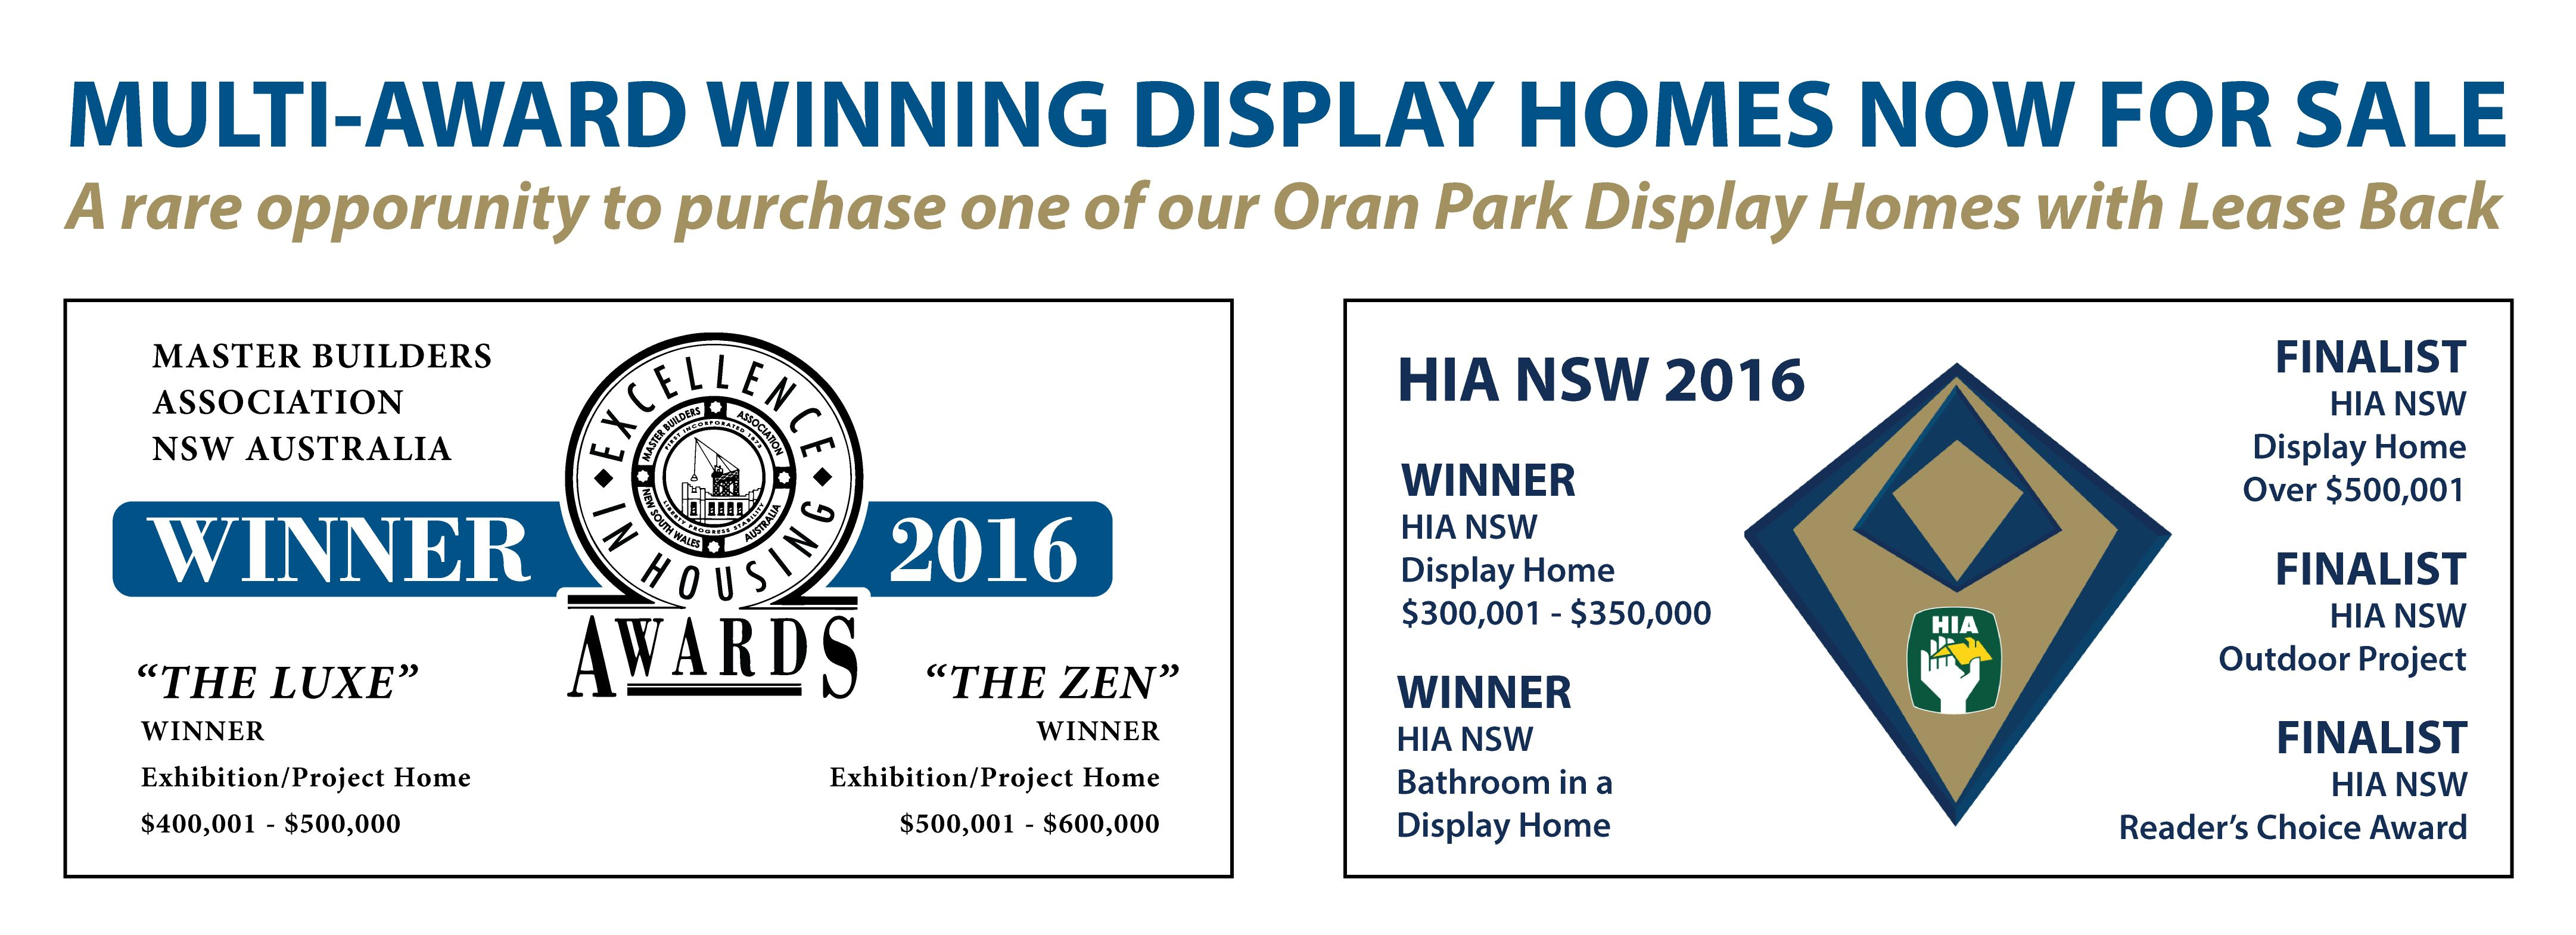 Oran Park Display Homes FOR SALE Banner foe Blast